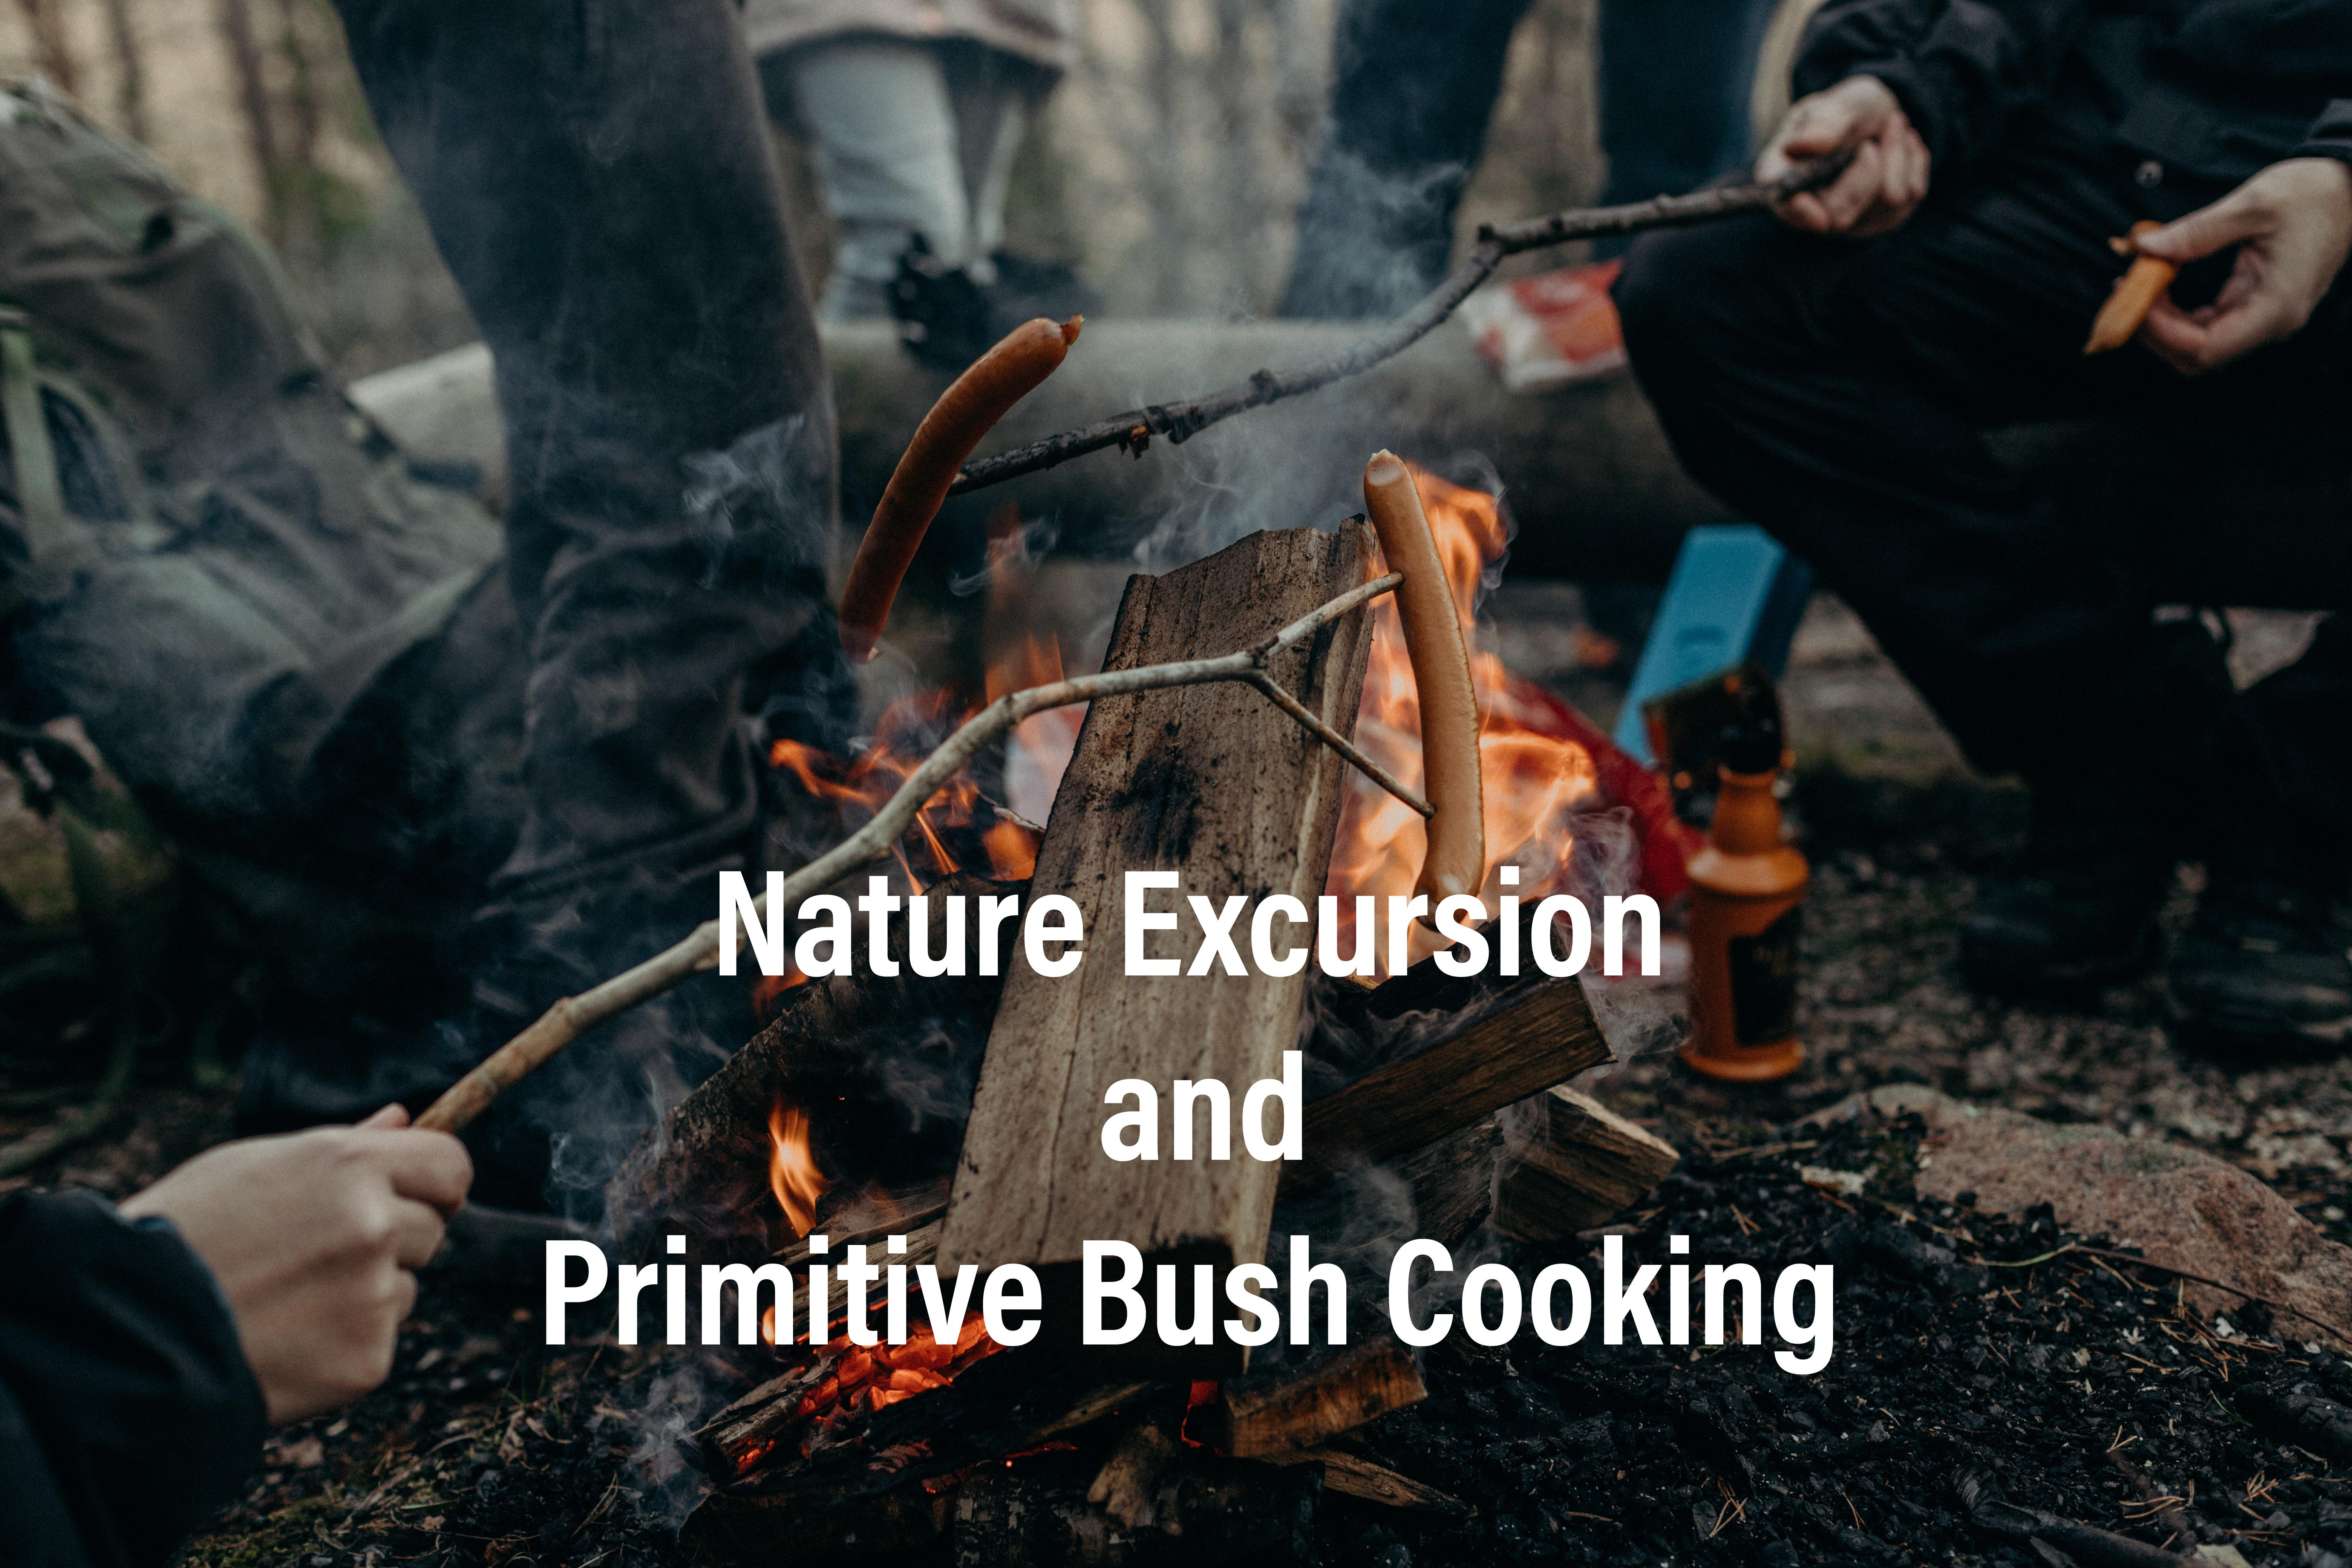 Nature Excursion With Primitive Bush Cooking Insta: @bushcraftcookoff